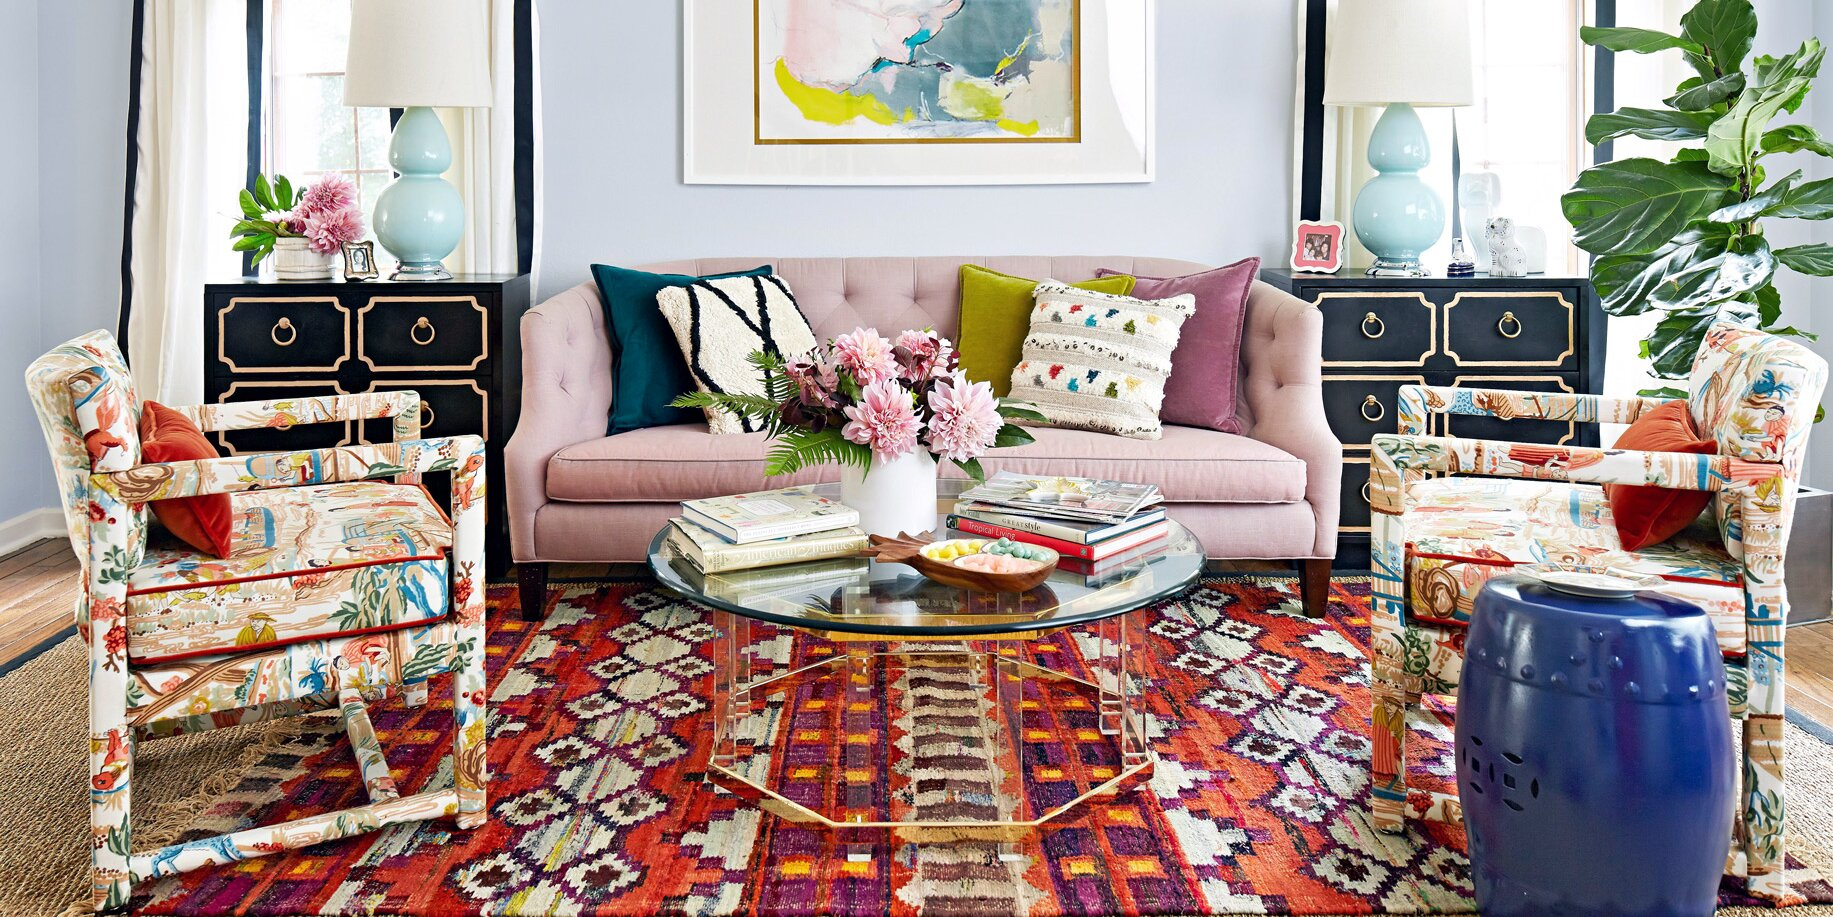 Your Guide To The Best Types Of Upholstery Fabric For Furniture Better Homes Gardens